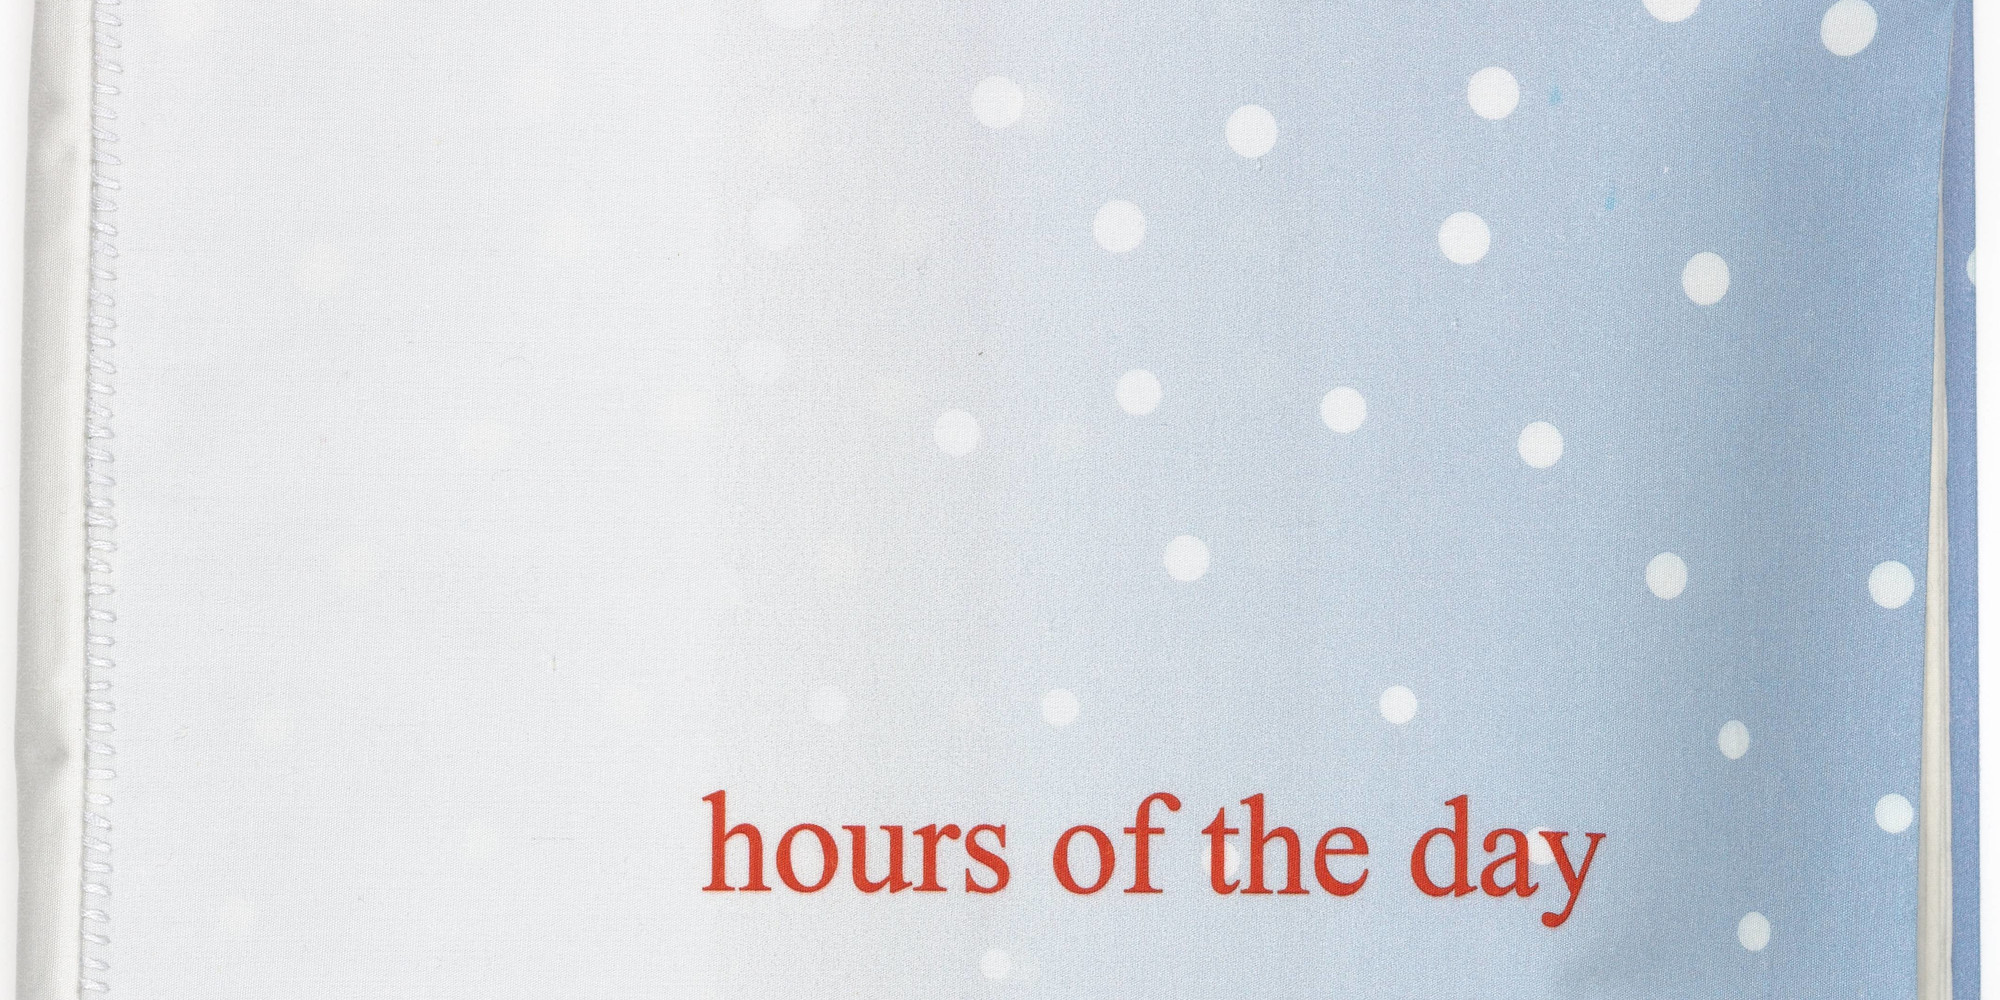 "Louise Bourgeois. Hours of the Day. 2006. Fabric illustrated book with 25 digital prints (including cover), page (each): 13 × 9"" (33 × 22.8 cm); overall: 13 × 10 5/8 × 2 3/16"" (33 × 27 × 5.5 cm), Carolina Nitsch Editions, New York, Lison Editions, New York (Louise Bourgeois). Dyenamix, New York. © The Easton Foundation/VAGA at ARS, NY"